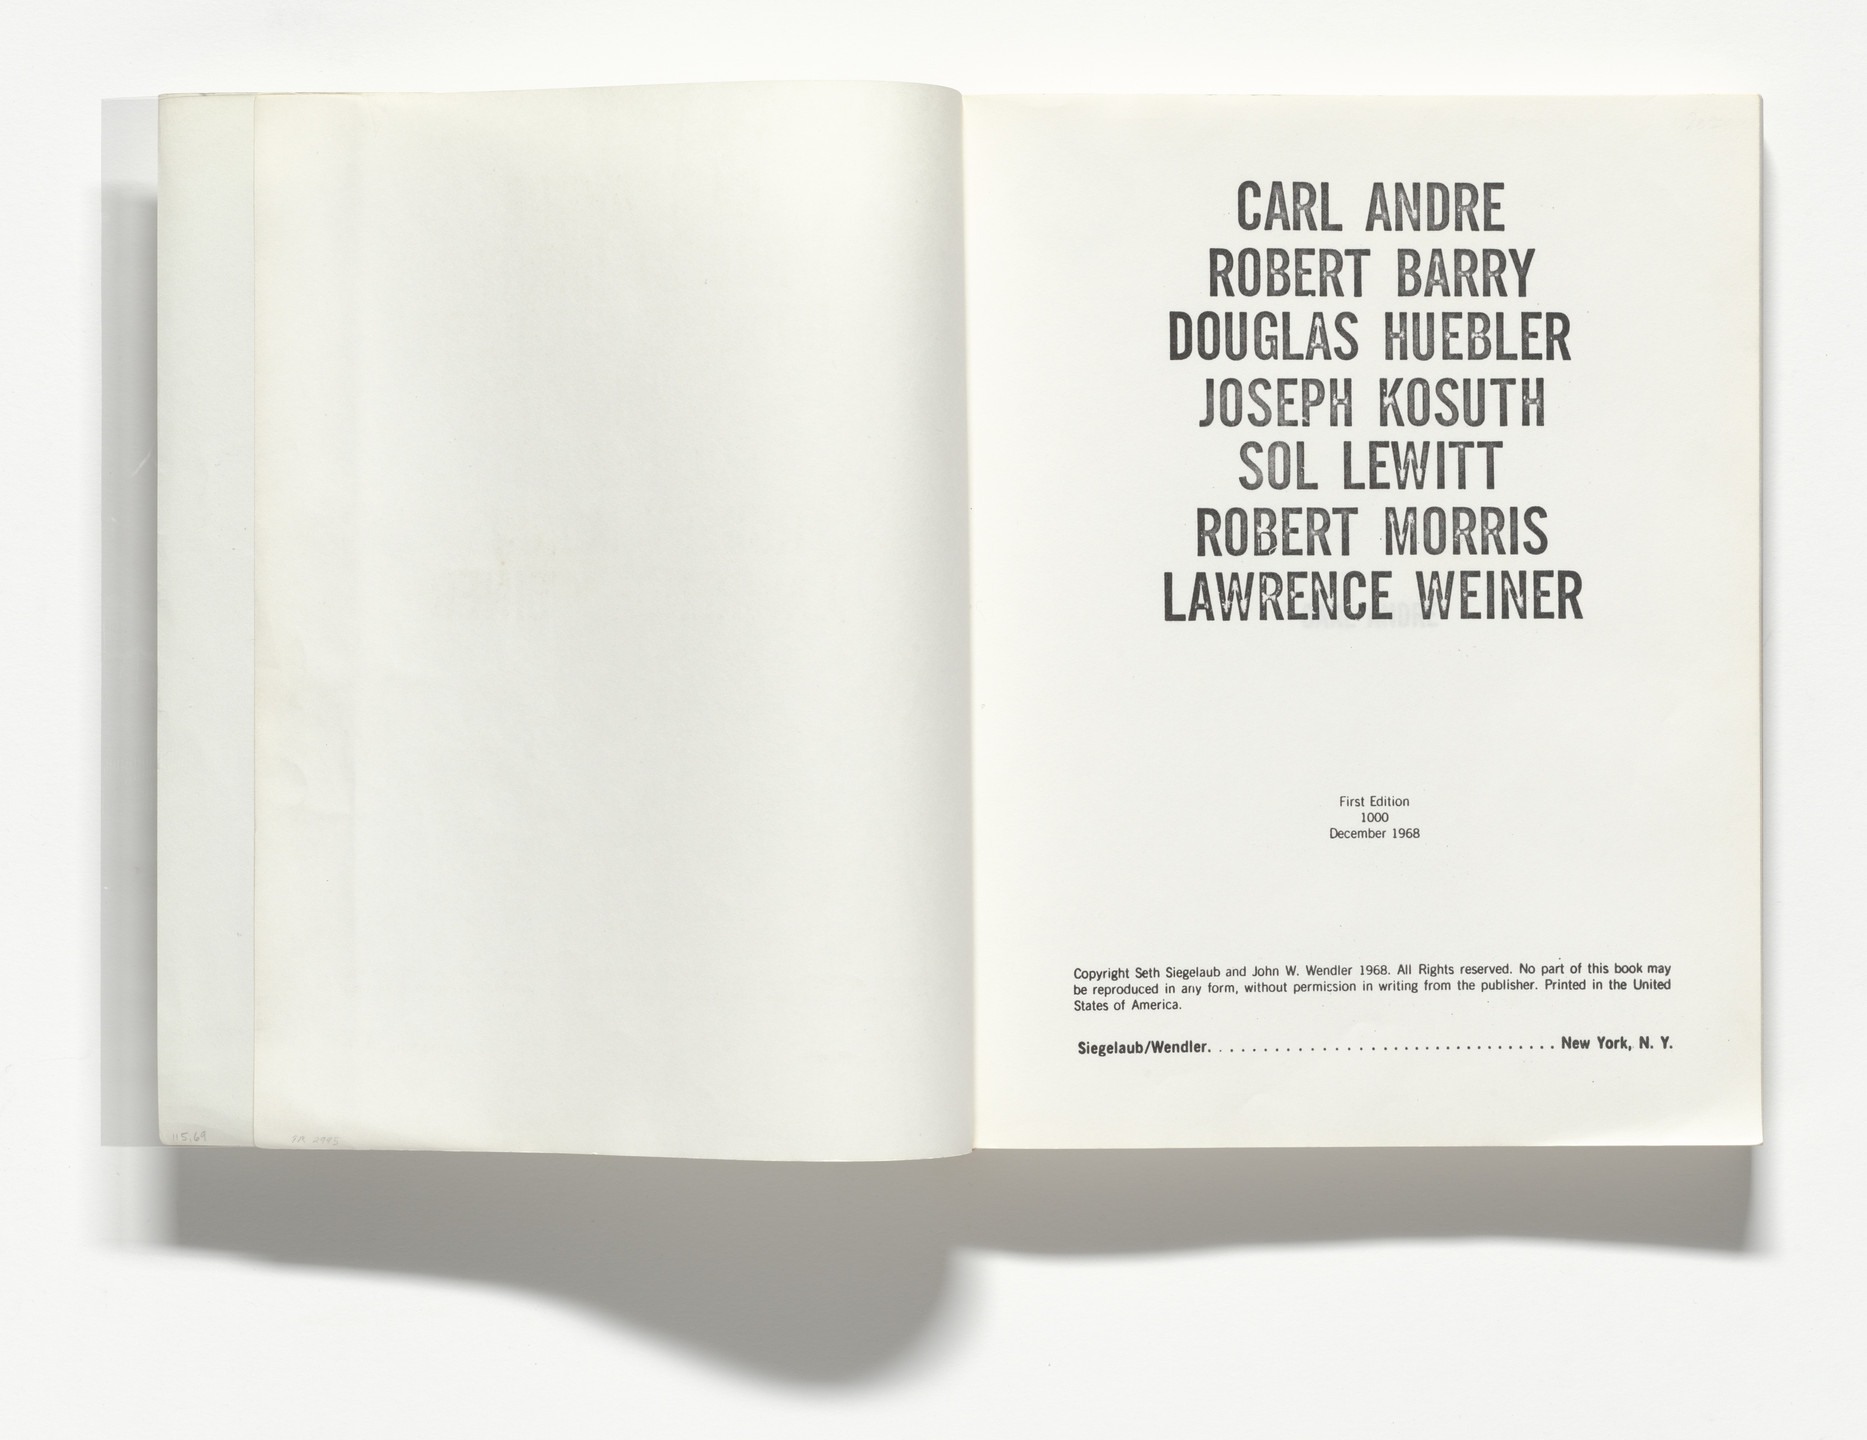 Lawrence Weiner, Robert Morris, Joseph Kosuth, Douglas Huebler, Robert Barry, Sol LeWitt, Carl Andre, Various Artists. Untitled (Xerox Book). 1968